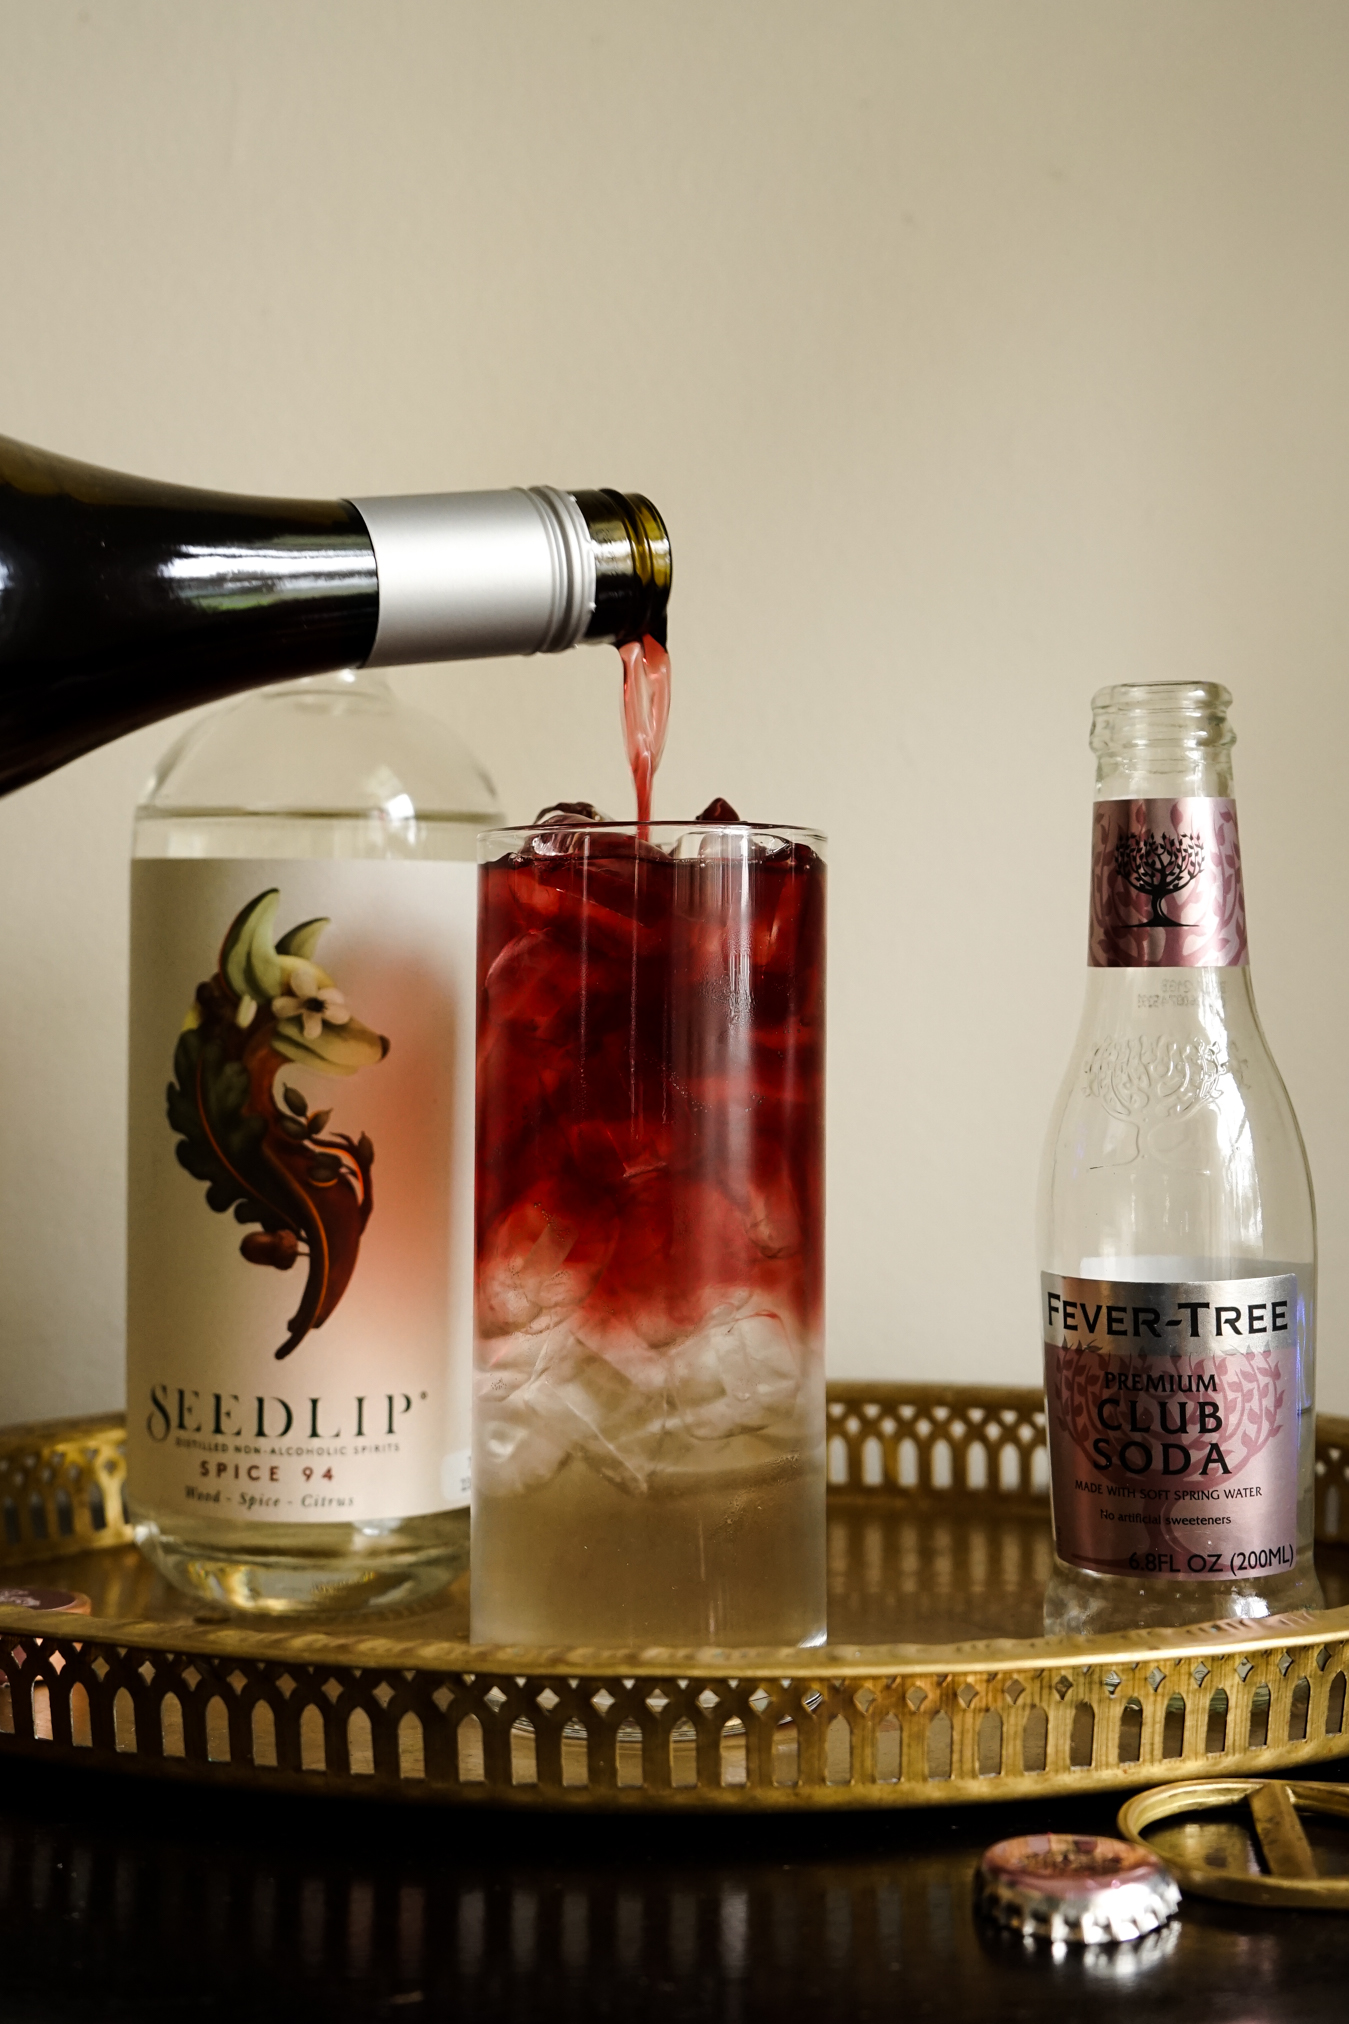 Underwood Pinot Noir Seedlip Cocktail